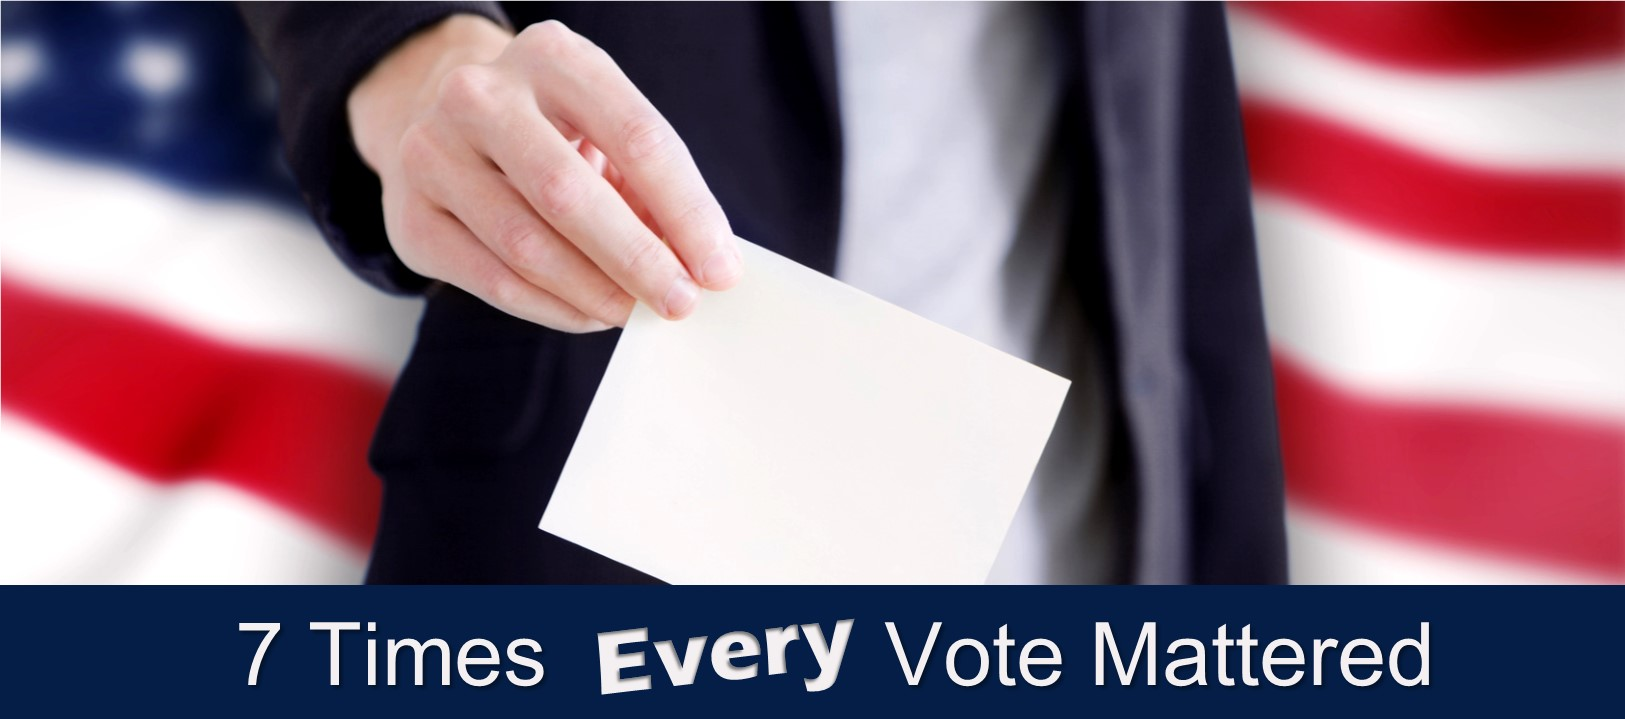 7 Times Every Vote Mattered